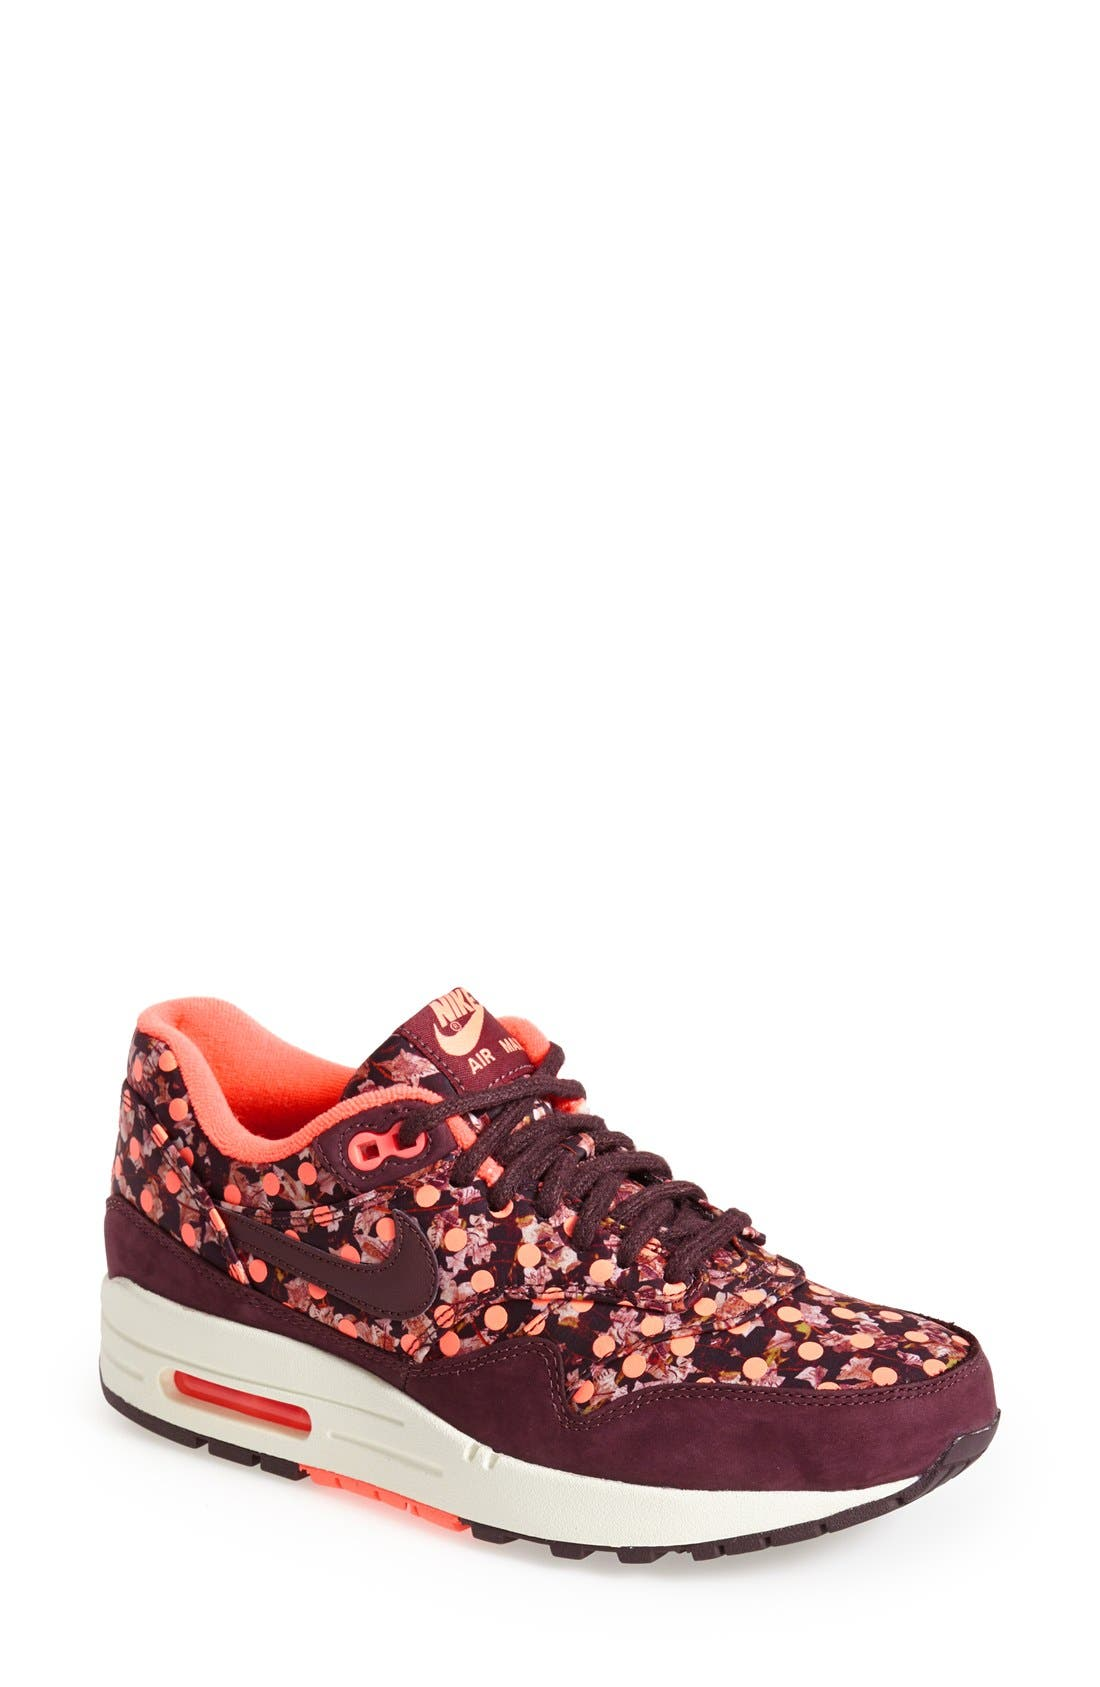 nike air max 1 womens nordstrom